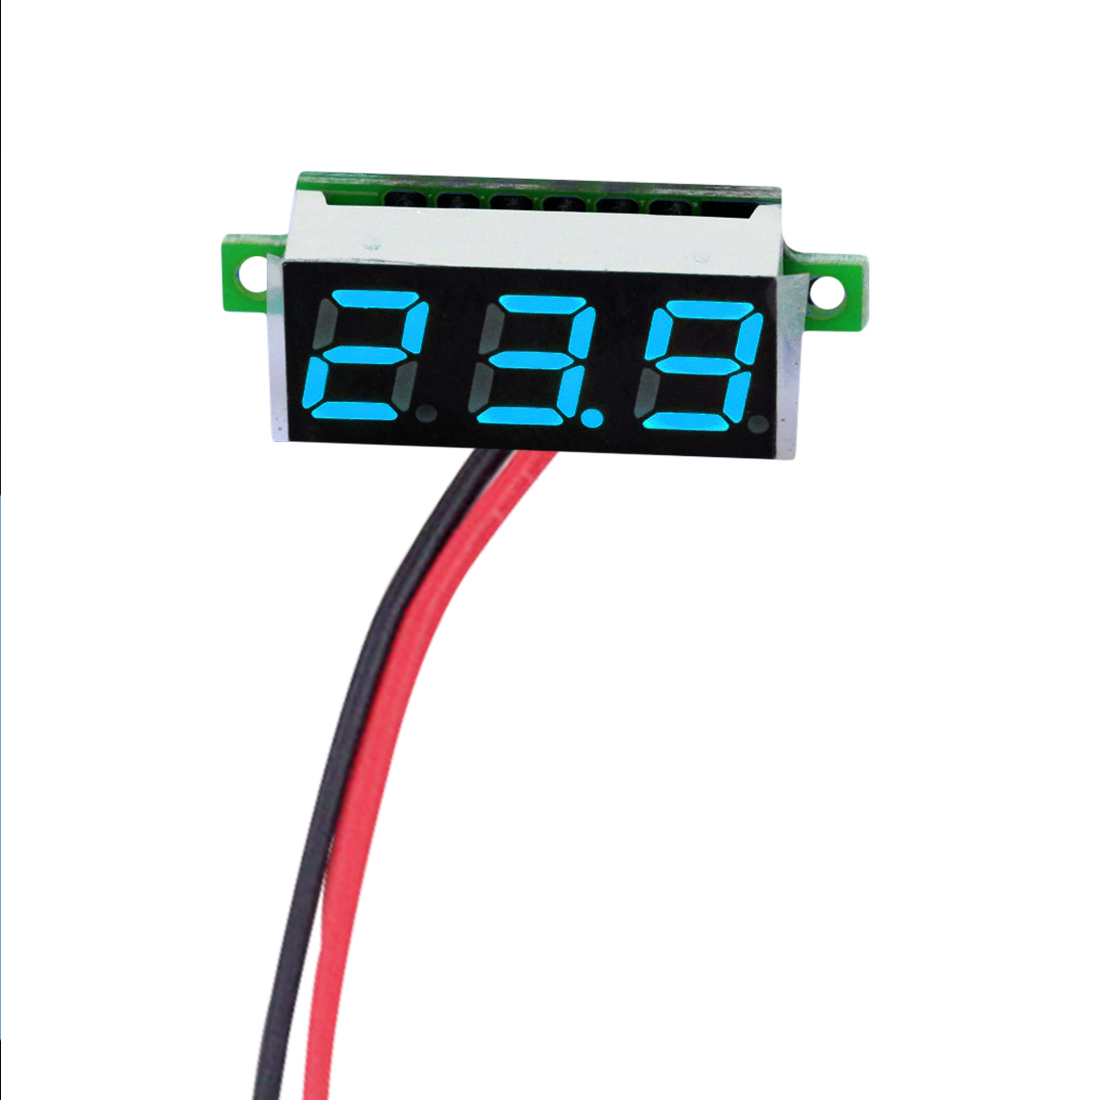 Mini Digital Voltmeter Voltage Tester Meter 0.28 Inch 2.5V-30V LED Screen Electronic Parts Accessories Digital Voltmeter